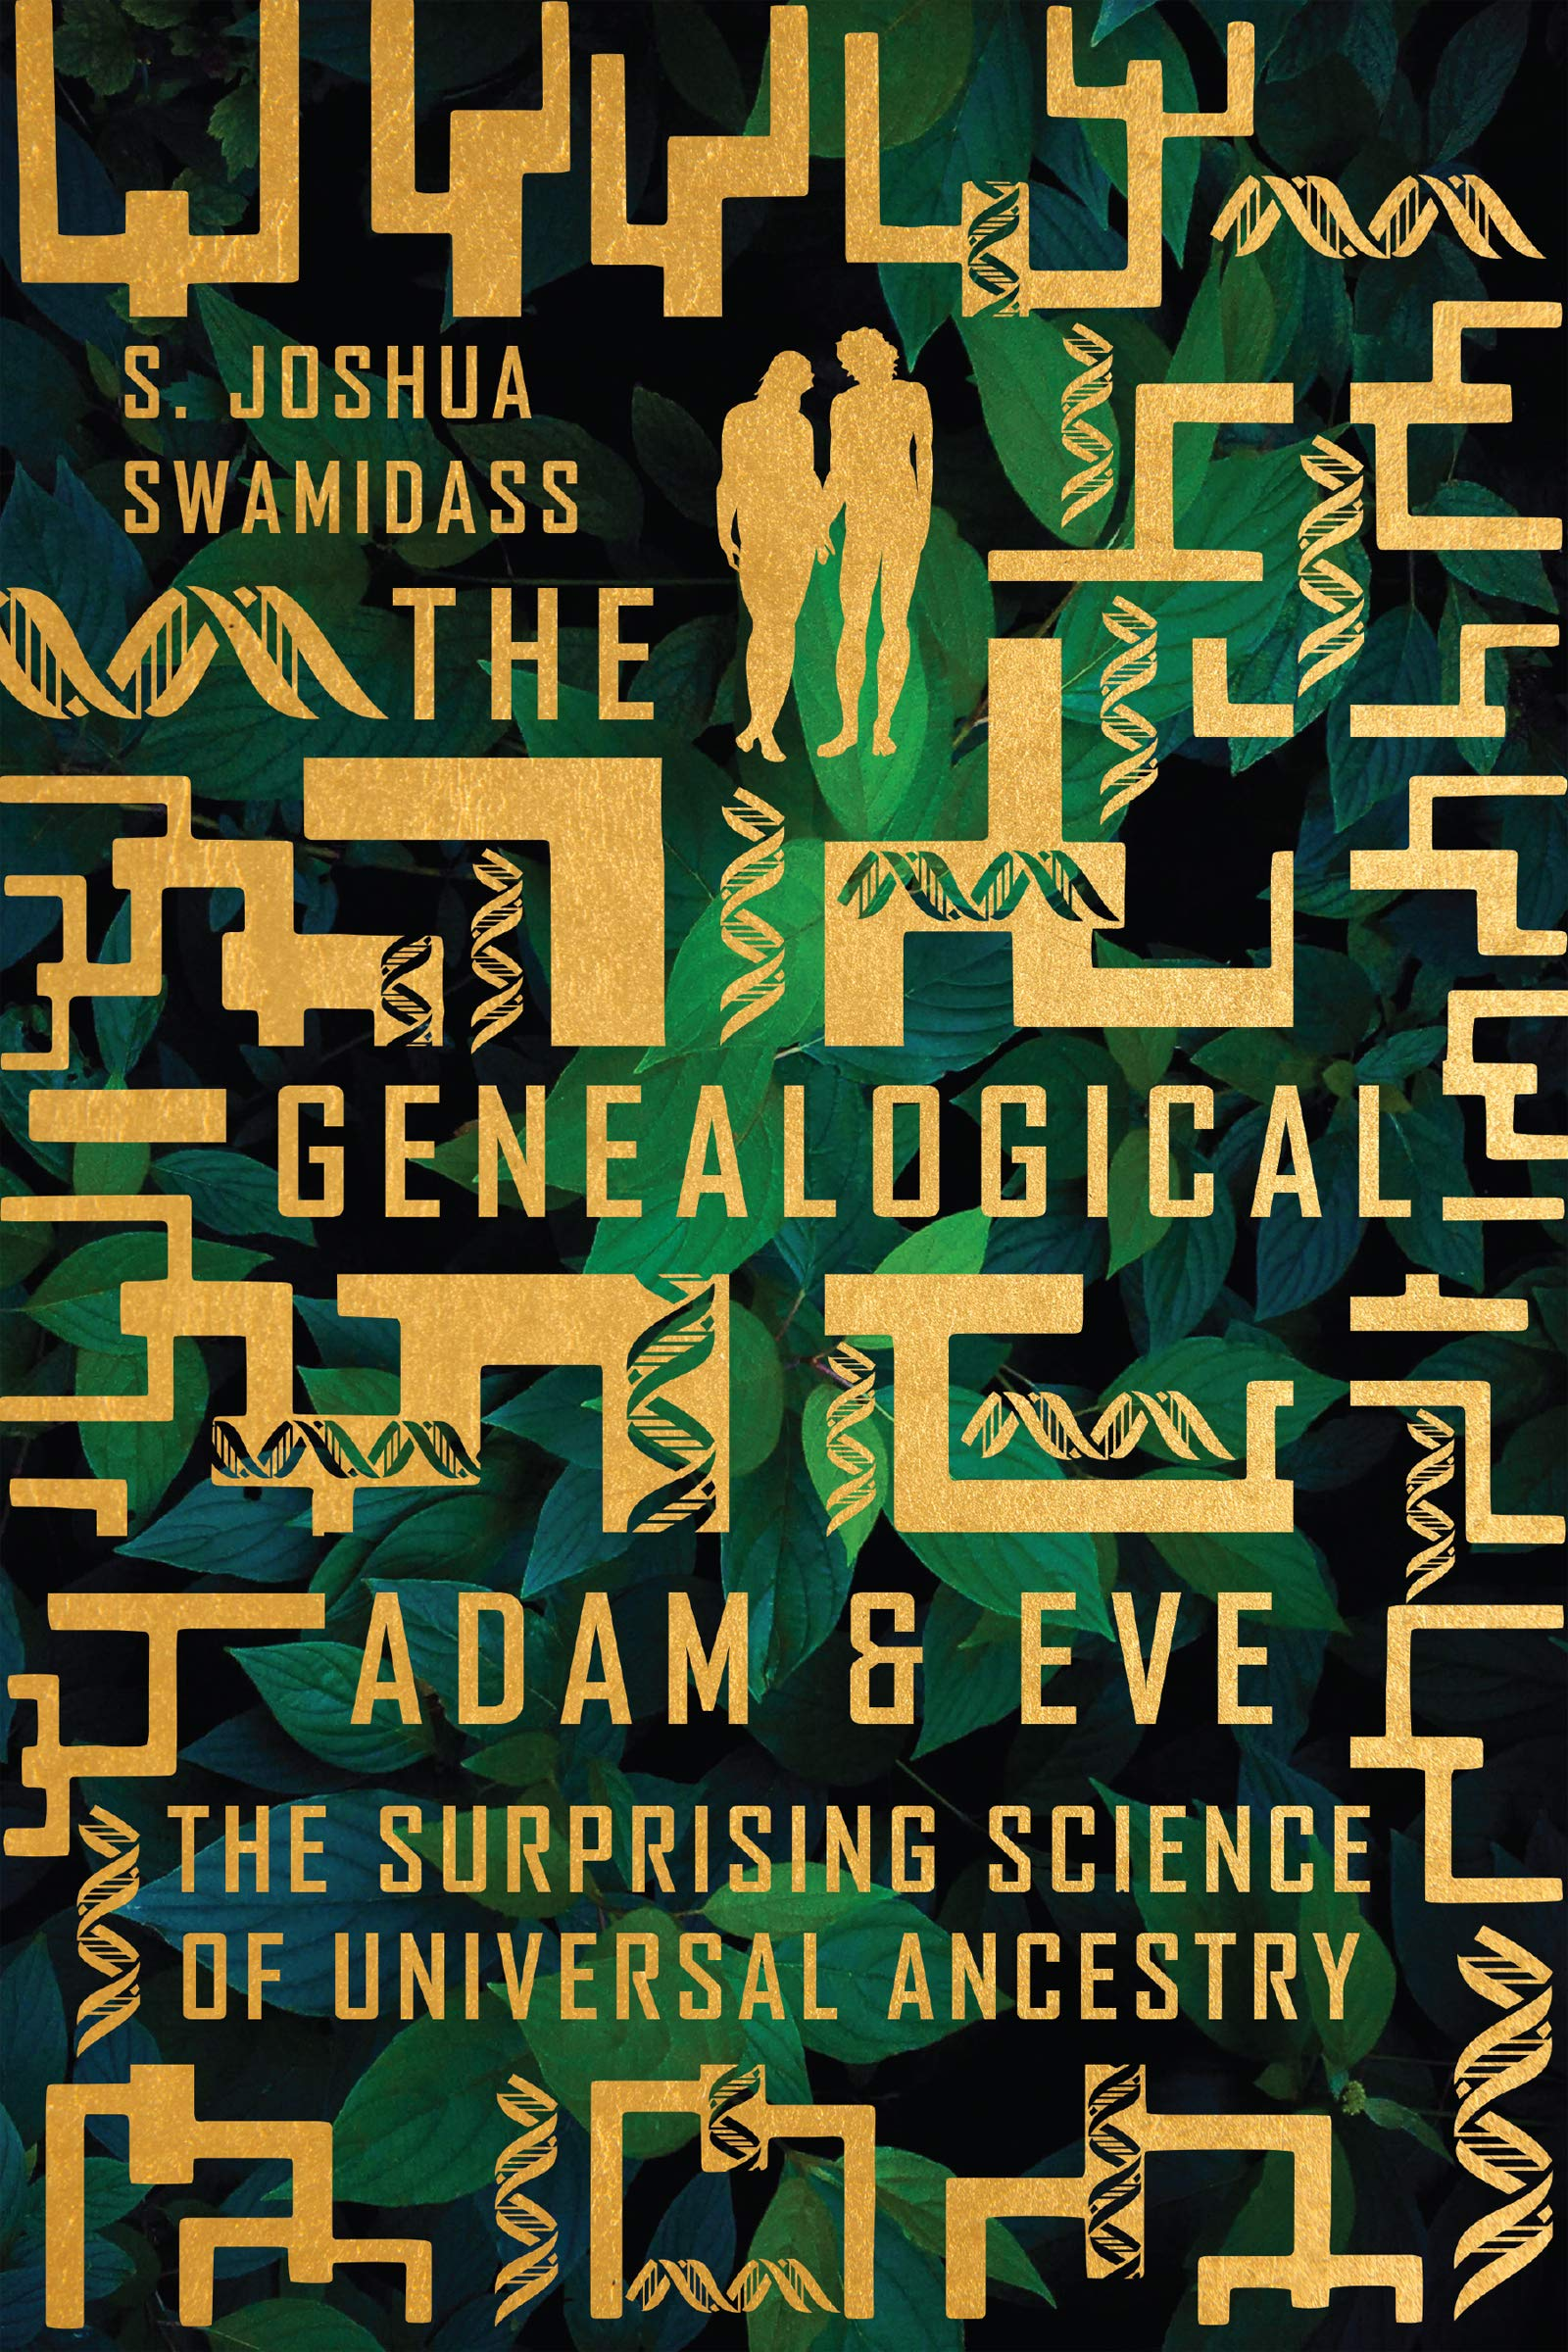 The Genealogical Adam And Eve The Surprising Science Of Universal Ancestry Swamidass S Joshua 9780830852635 Amazon Com Books